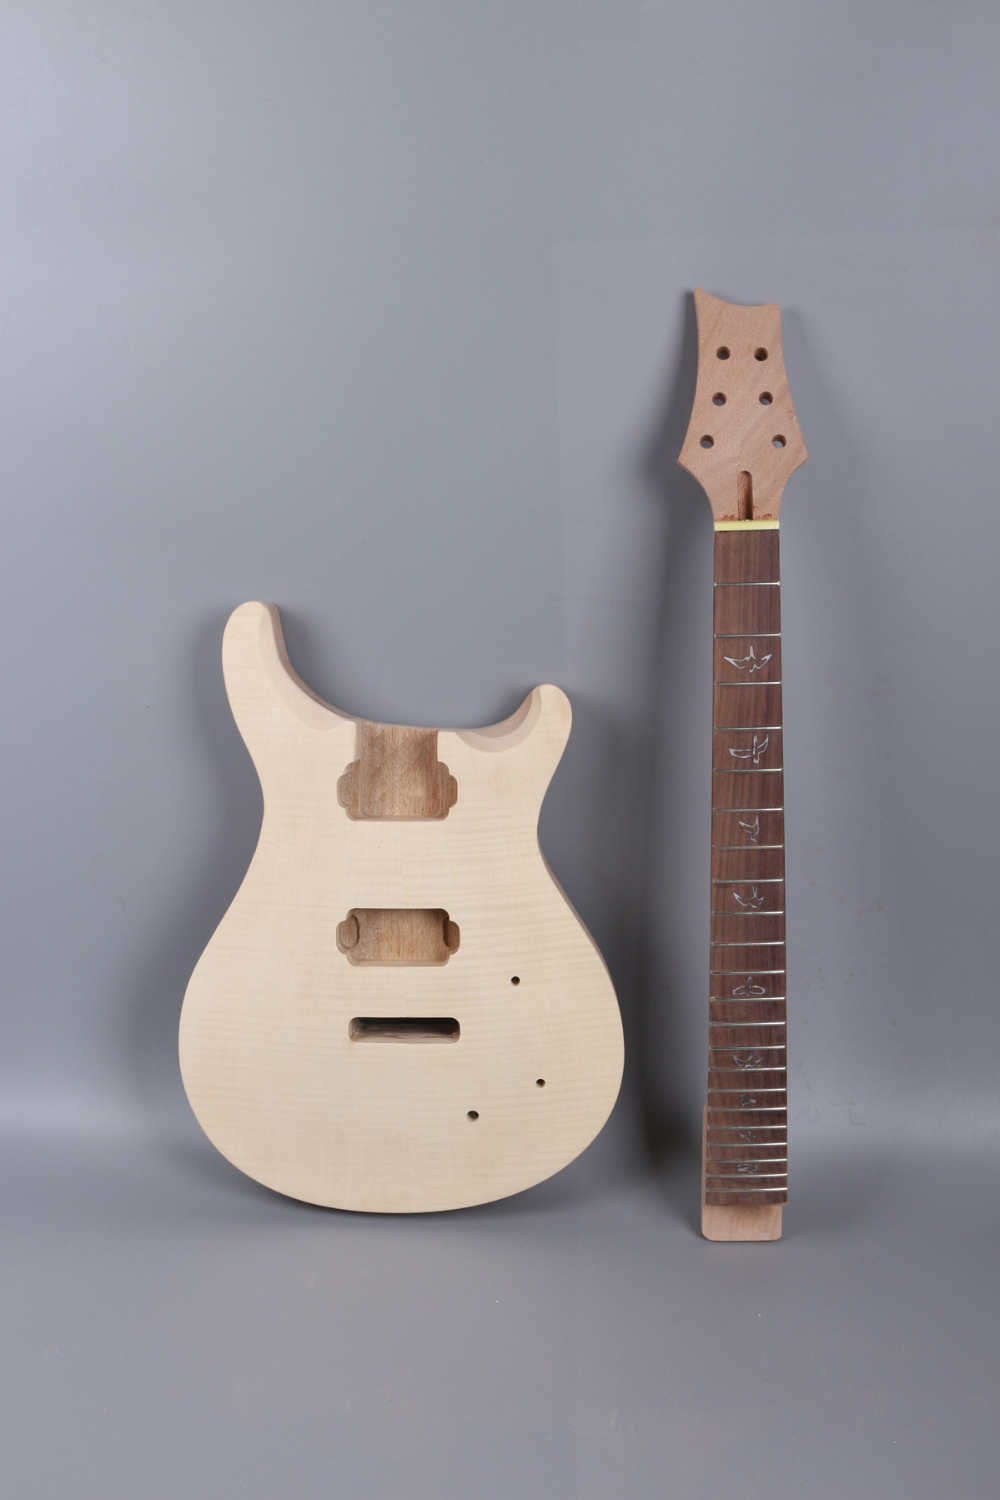 24.75 inch 22 fret electric guitar Body flam maple top Solid wood Diy guitar parts# - mahogany made and rosewood fingerboard high quality custom shop lp jazz hollow body electric guitar vibrato system rosewood fingerboard mahogany body guitar